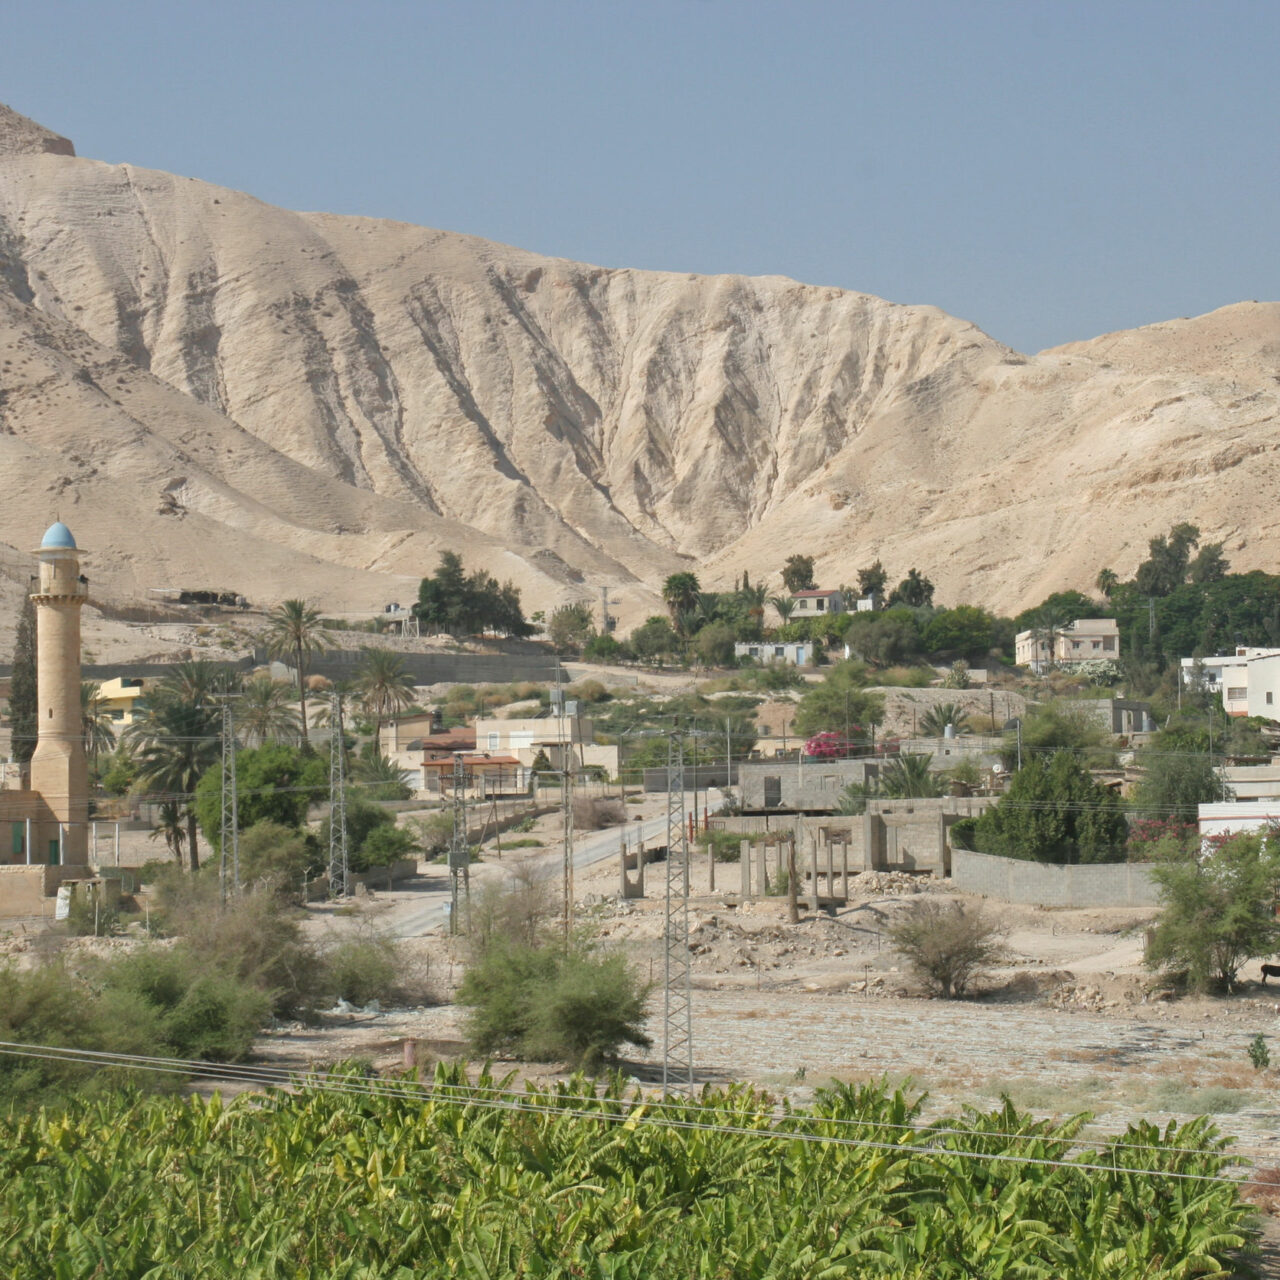 City of Jericho, Israel